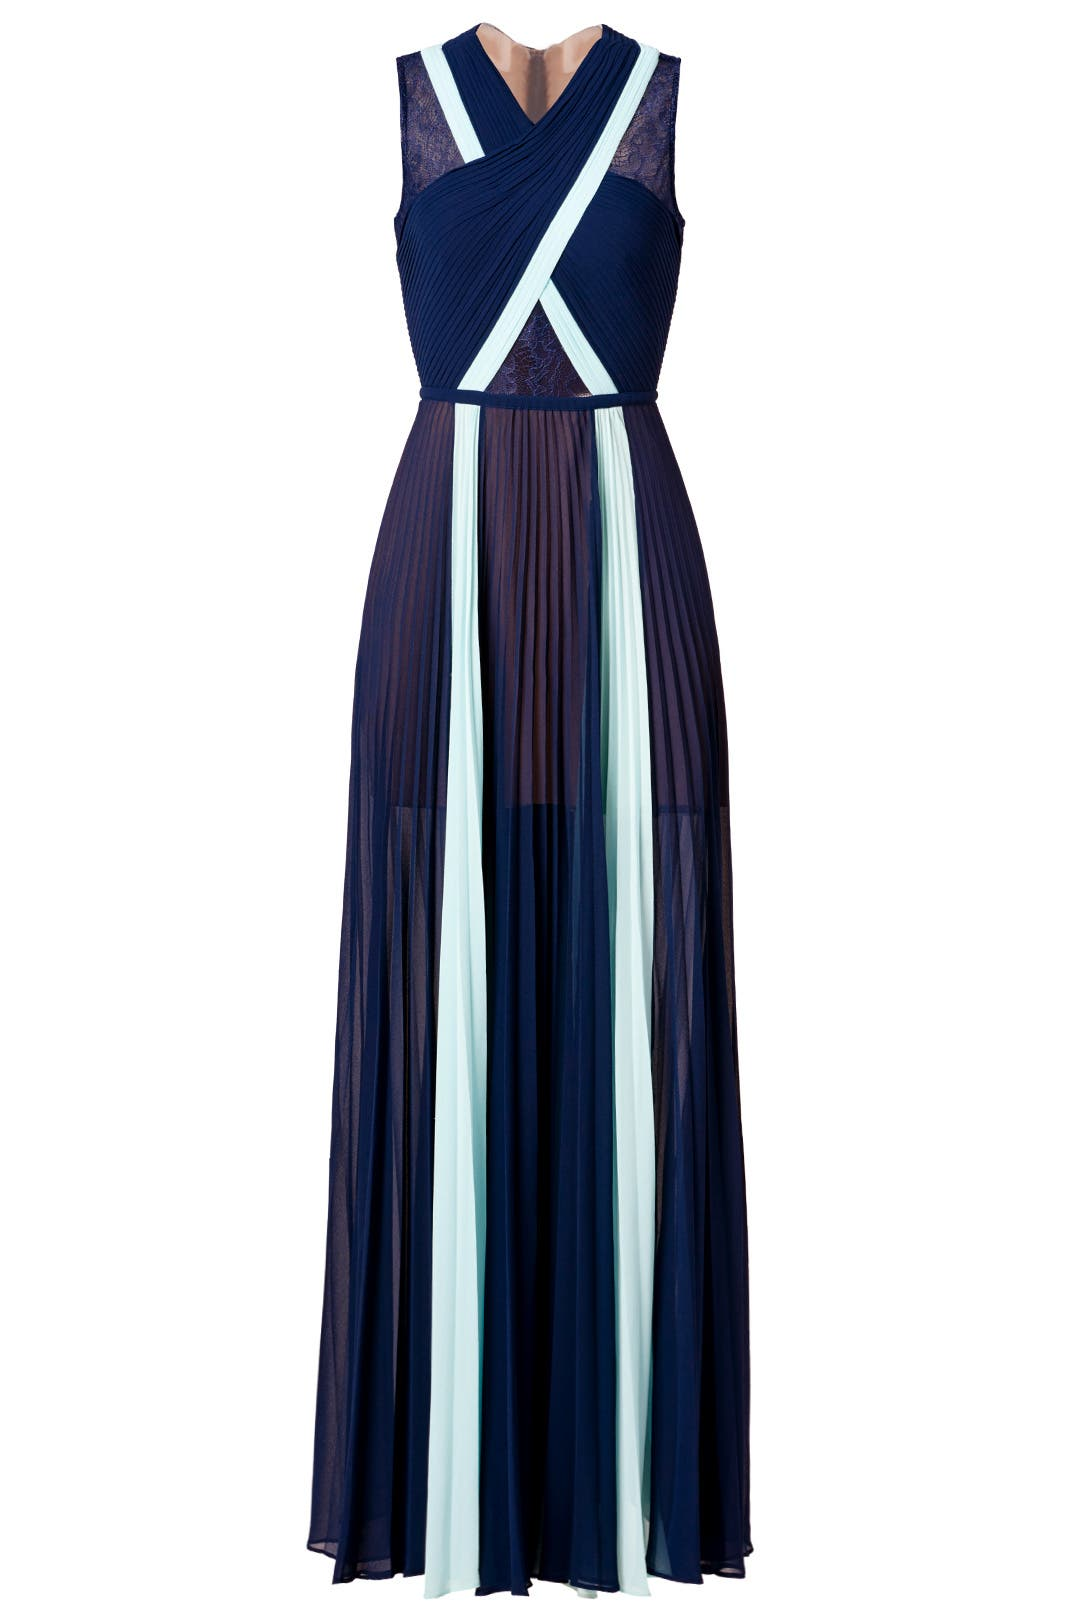 Before Midnight Gown by BCBGMAXAZRIA for $50 - $70 | Rent the Runway